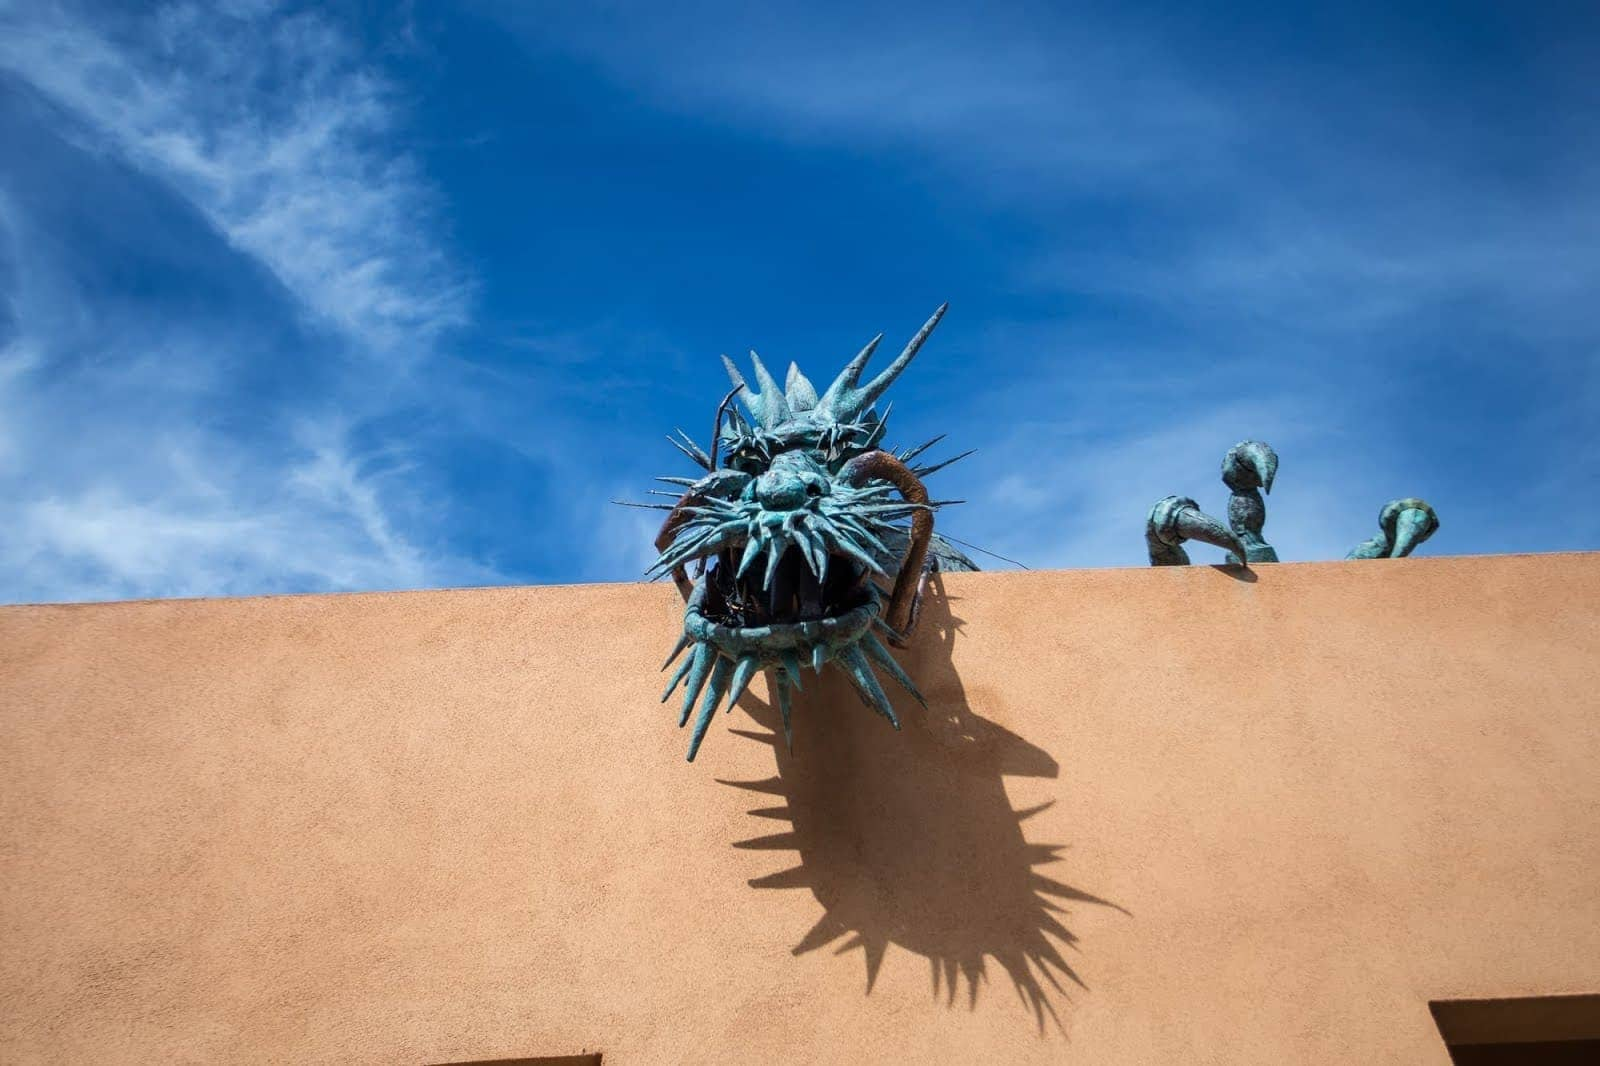 Dragon Santa Fe New Mexico by Laurence Norah